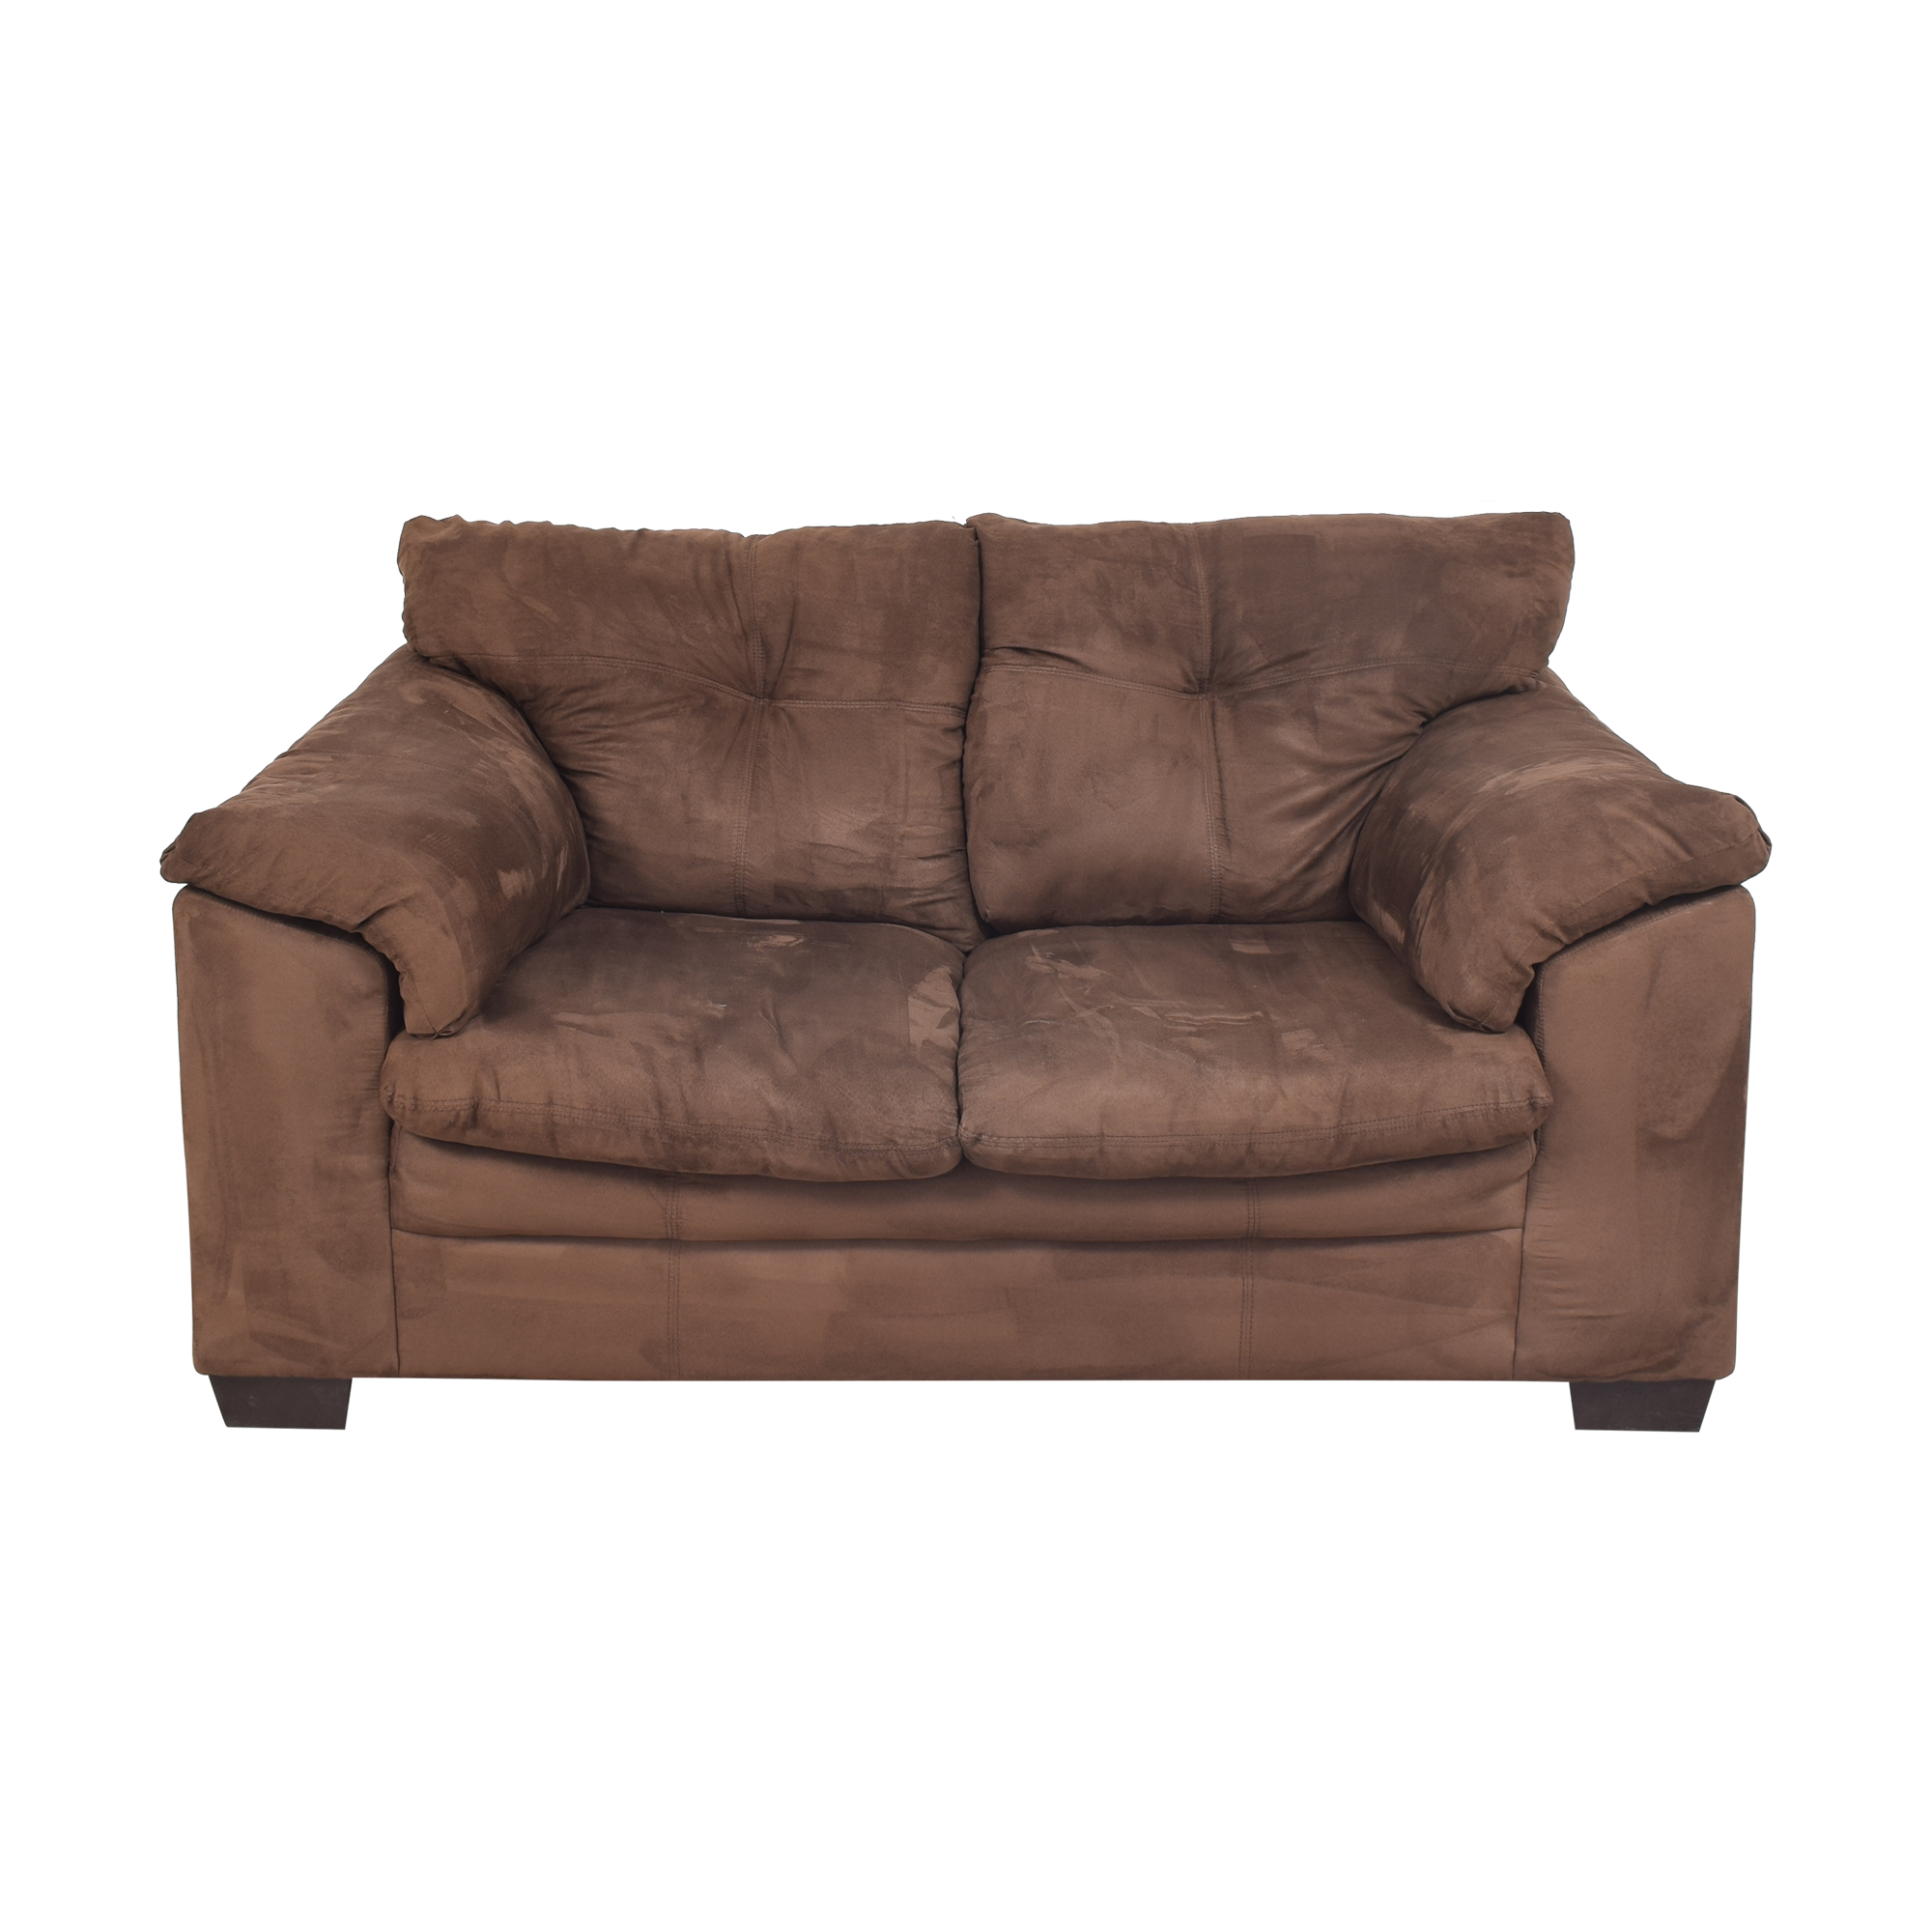 shop Raymour & Flanigan Raymour & Flanigan Tufted Loveseat online